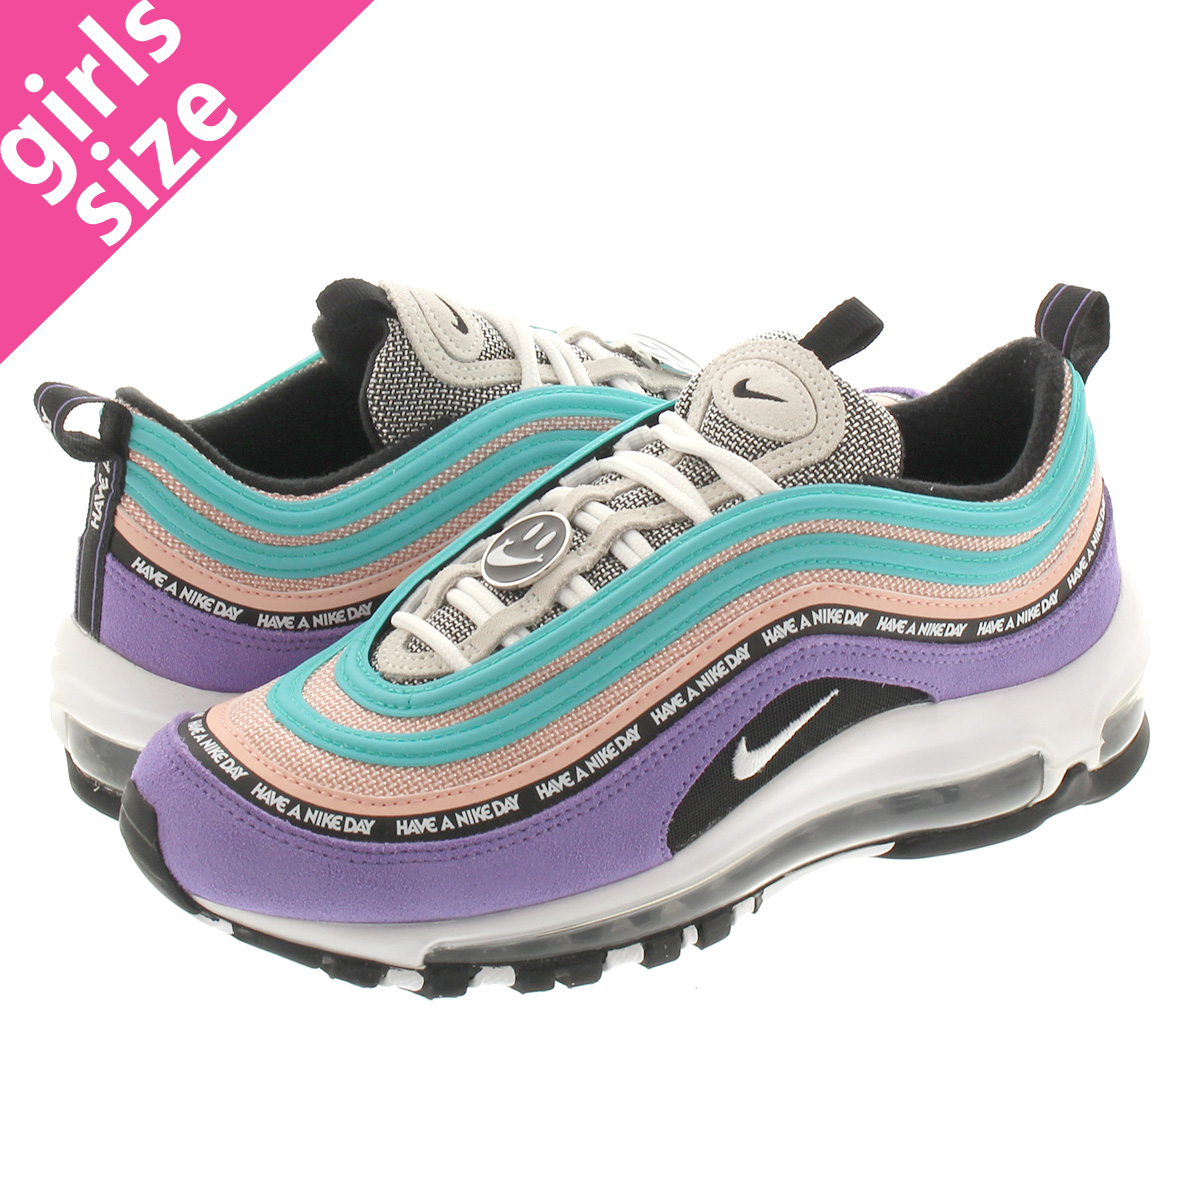 finest selection de7cc 4cd31 NIKE AIR MAX 97 SE GS Kie Ney AMAX 97 SE GS SPACE PURPLE/WHITE/BLACK  923,288-500